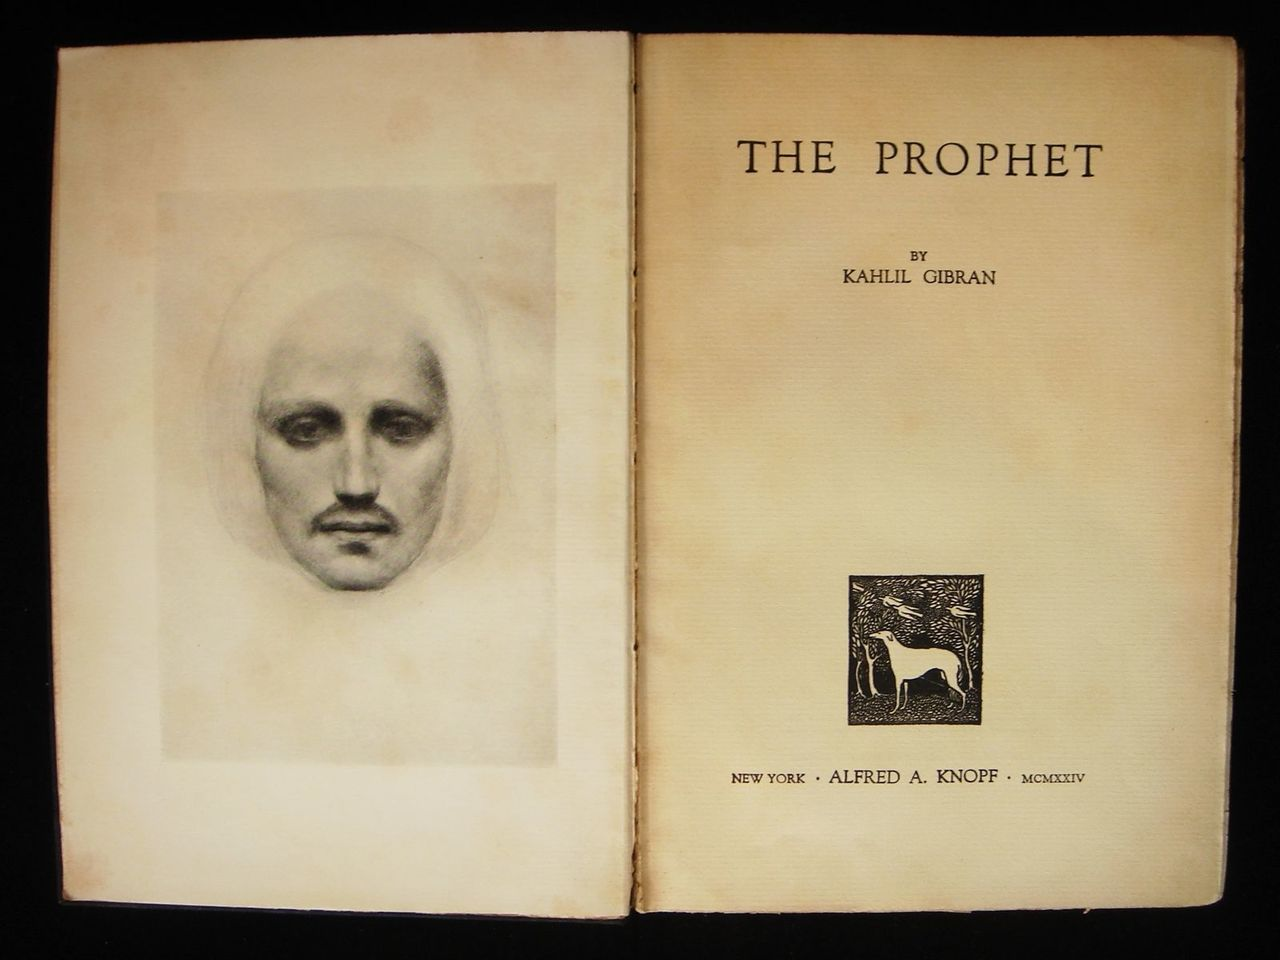 THE PROPHET, by Kahlil Gibran - 1923 [1st Ed, 2nd Print]